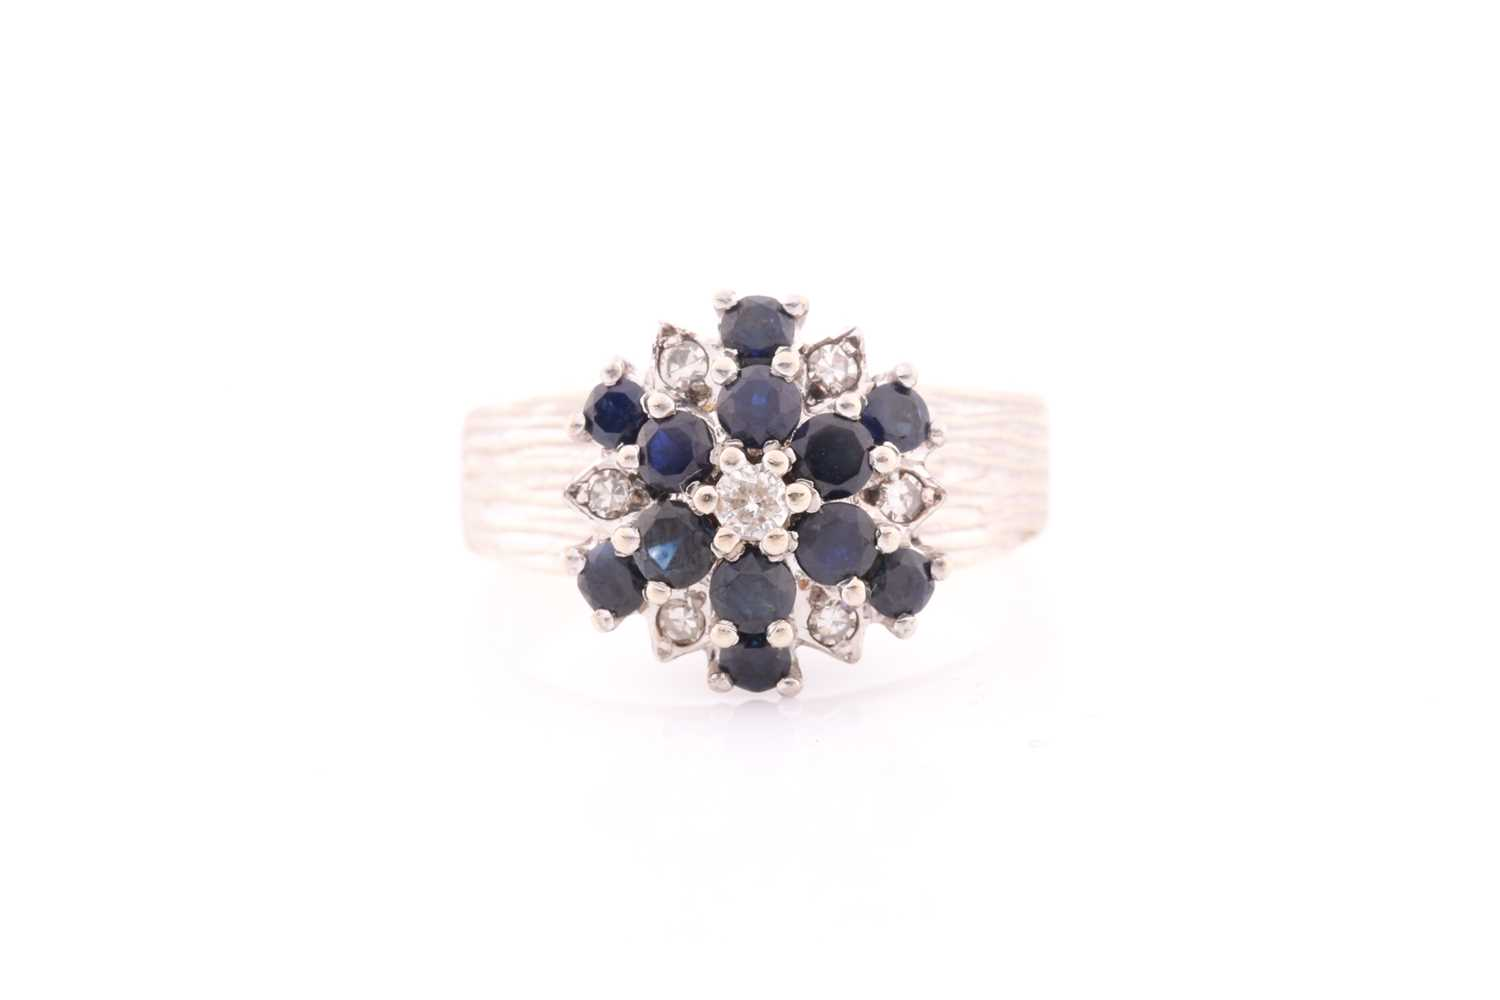 An 18ct white gold, diamond, and sapphire cluster ring, set with a cluster of round-cut sapphires